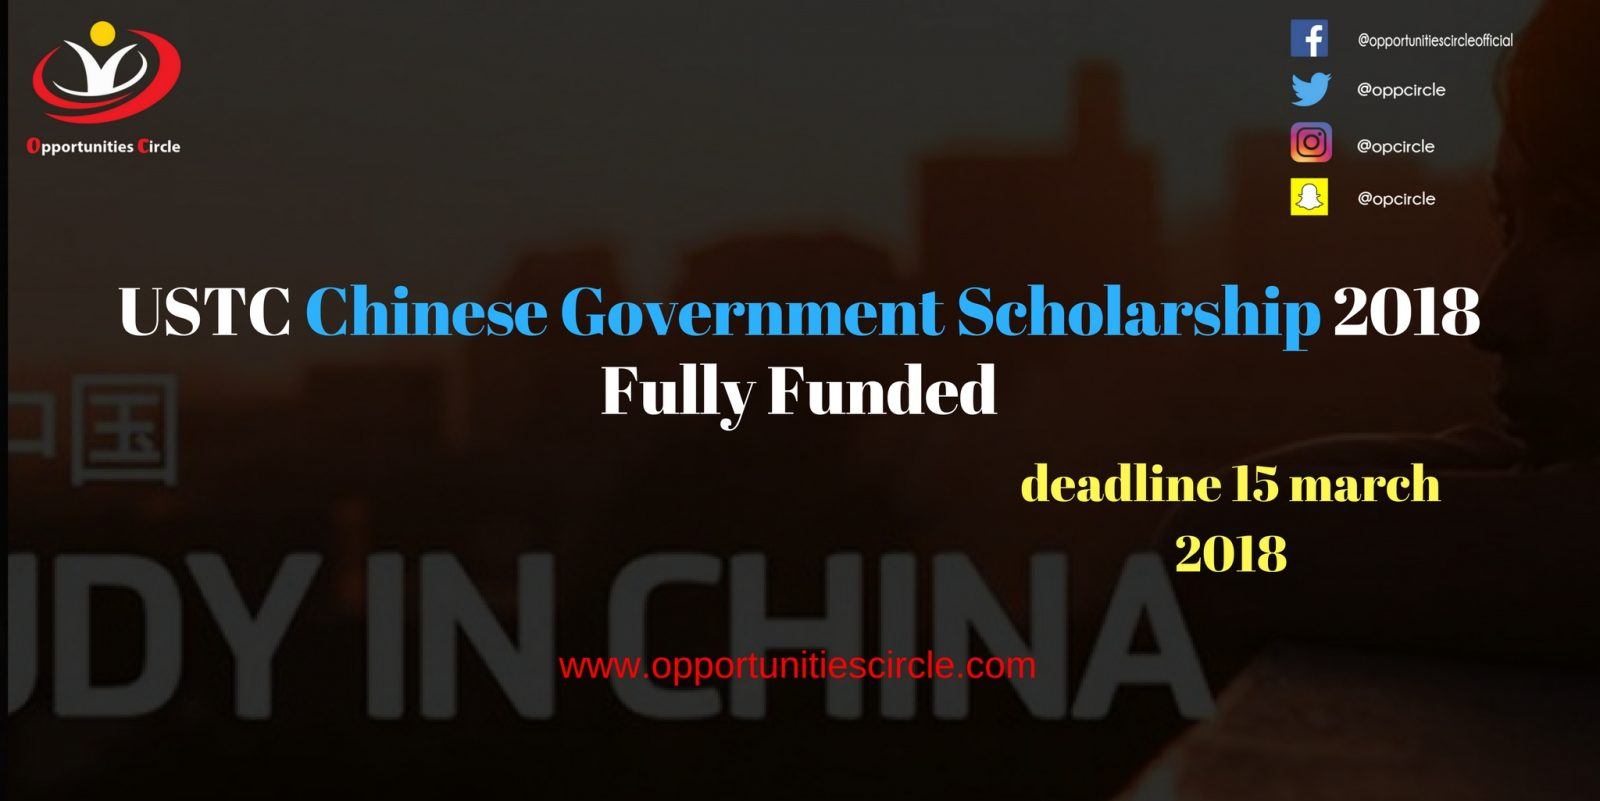 USTC Chinese Government Scholarship 2018 Fully Funded - USTC Chinese Government Scholarship 2018 Fully Funded